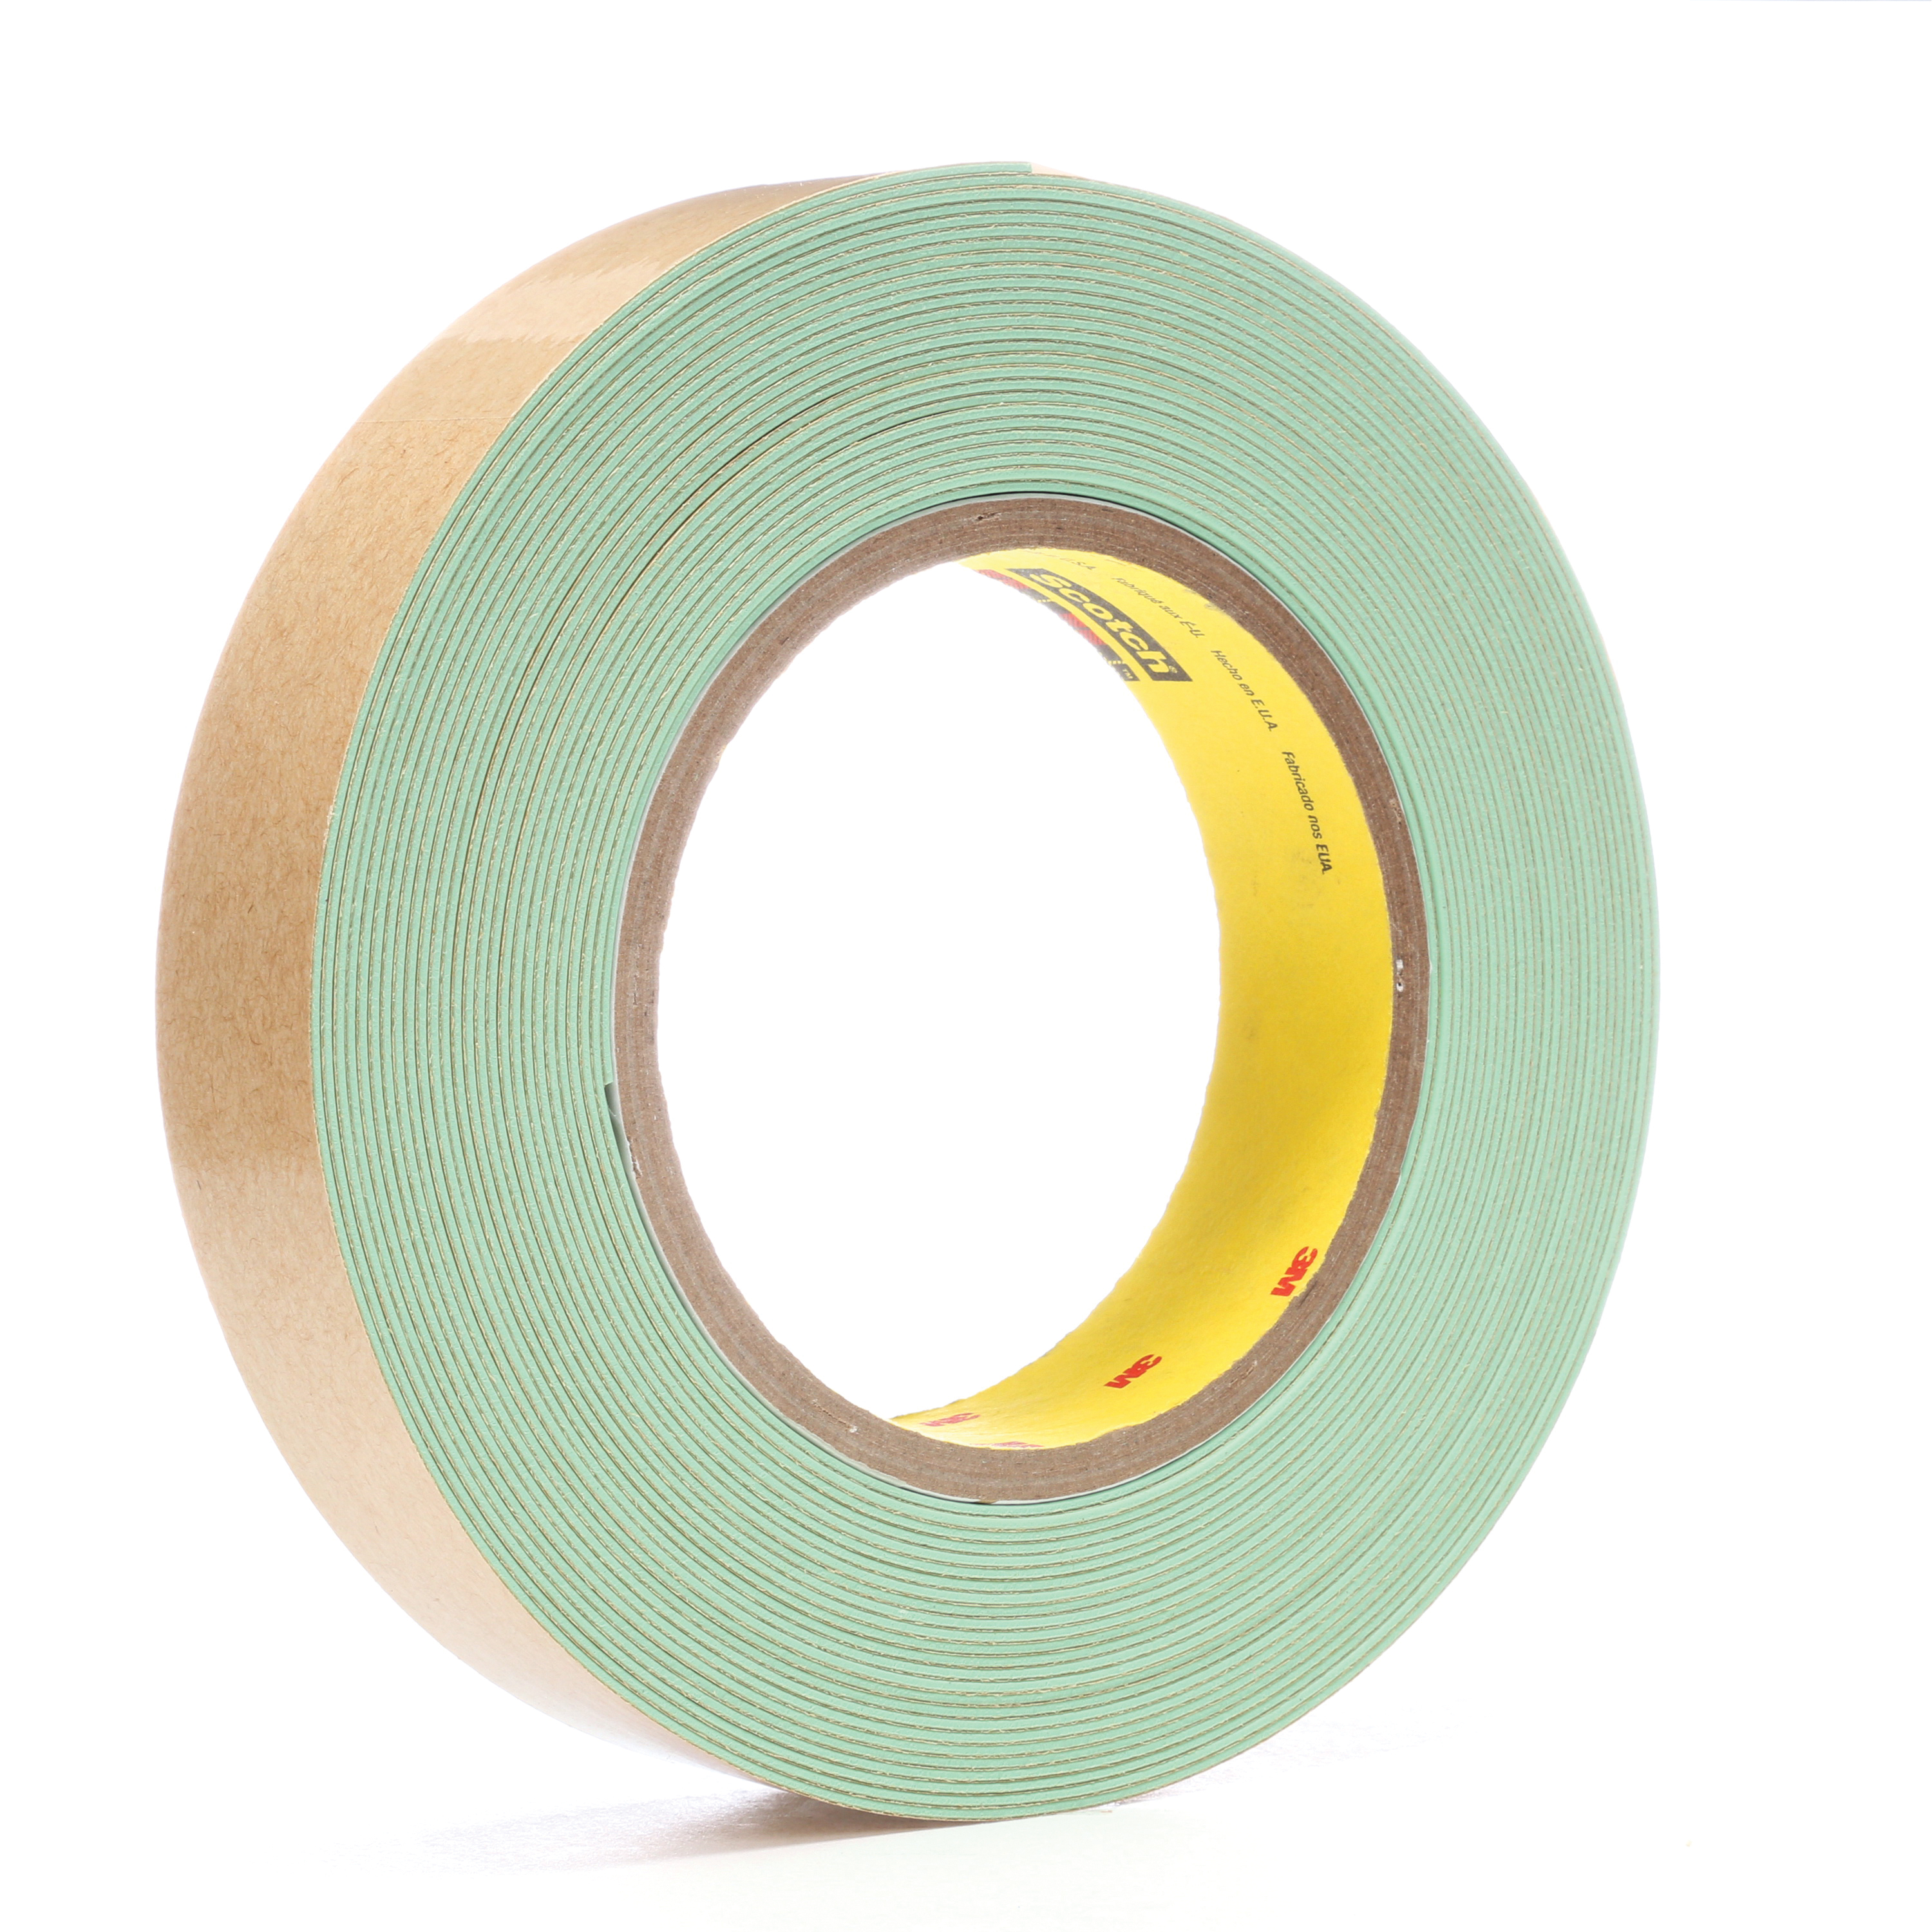 3M™ 048011-58036 203 General Purpose Masking Tape, 55 m L x 24 mm W, 4.7 mil THK, Natural Rubber Adhesive, Crepe Paper Backing